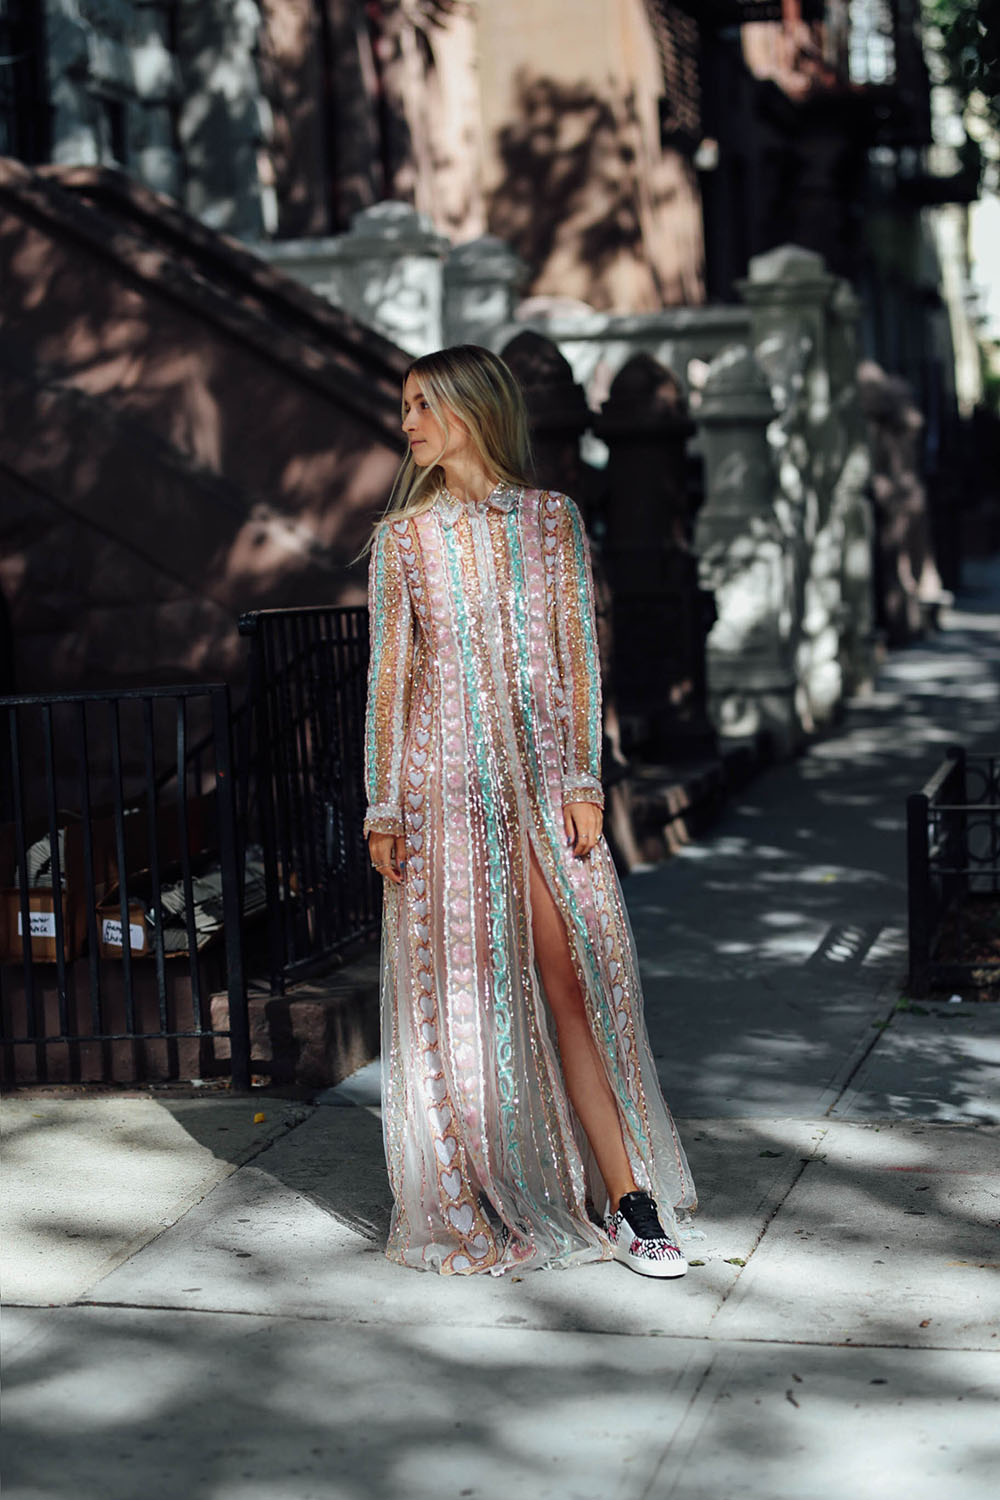 Thefashionguitar Charlotte Groeneveld wearing Valentino Pre-Fall 2017 dress and sneakers